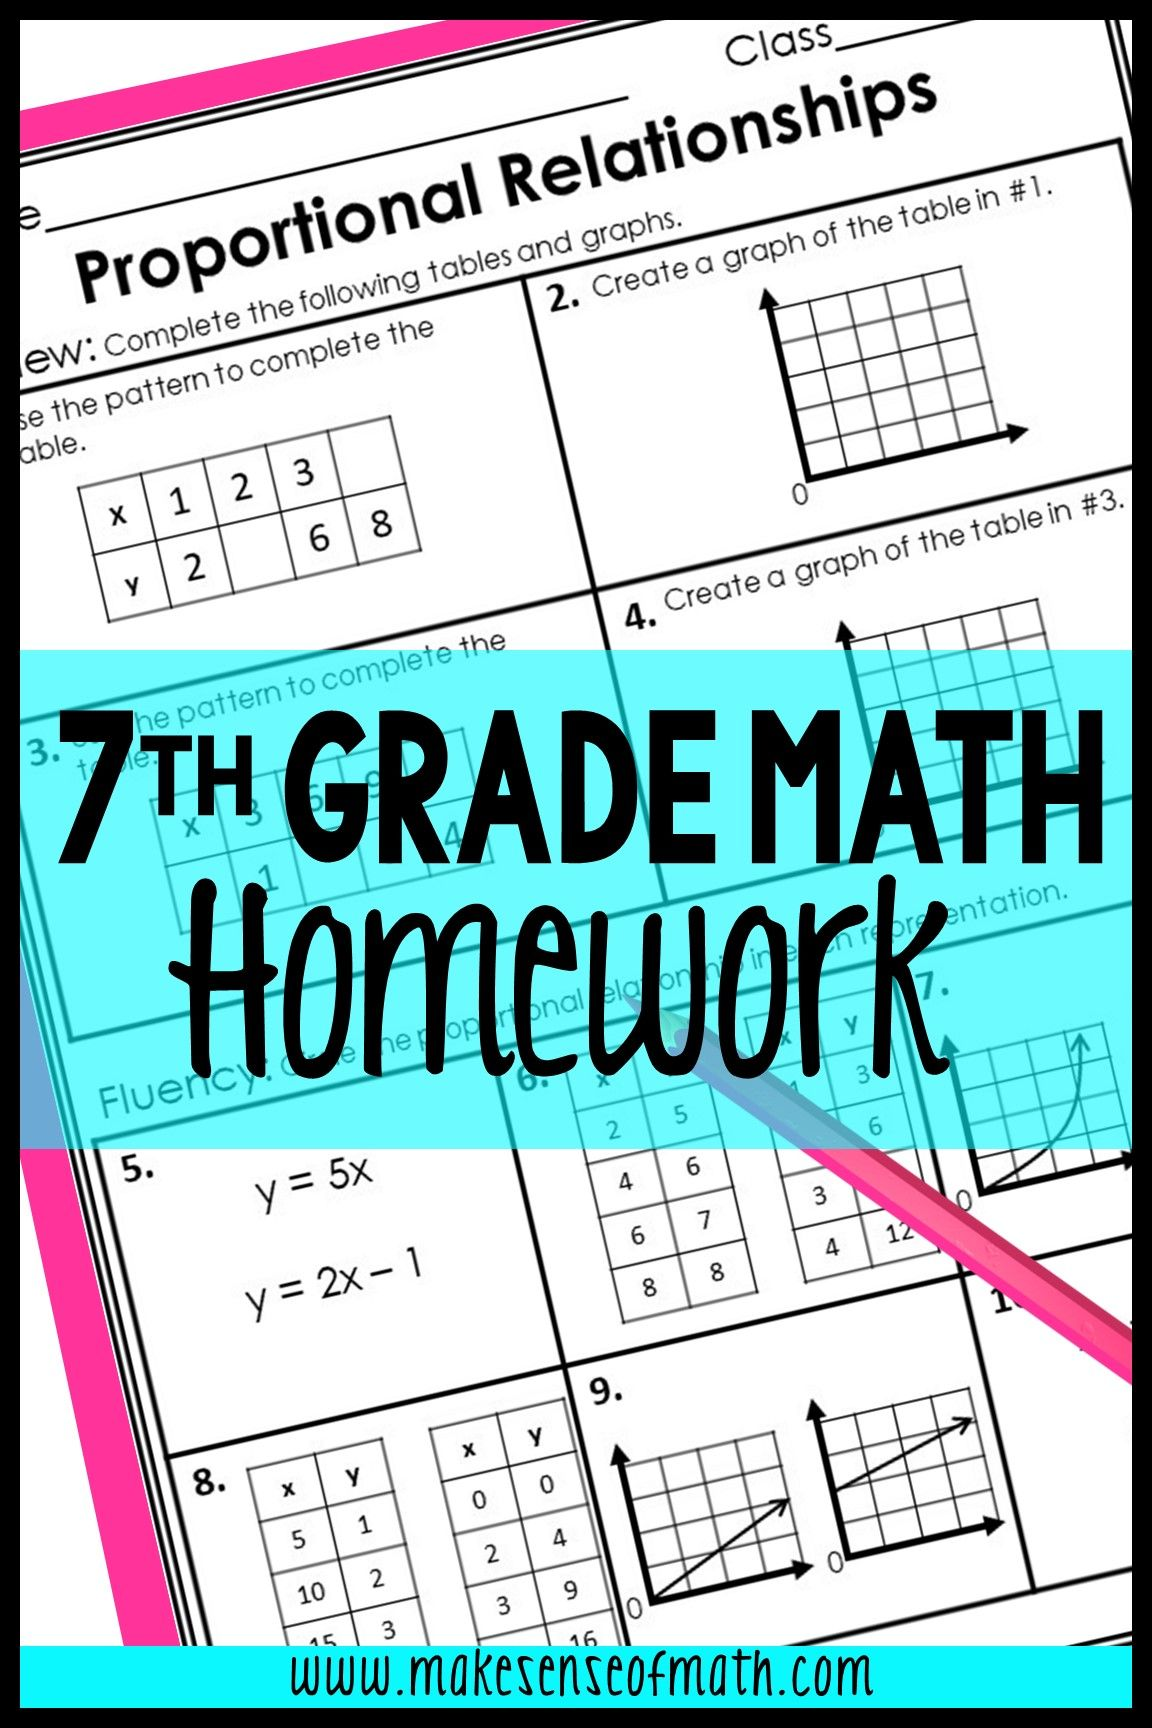 hight resolution of Proportional Relationships Worksheets   Relationship worksheets